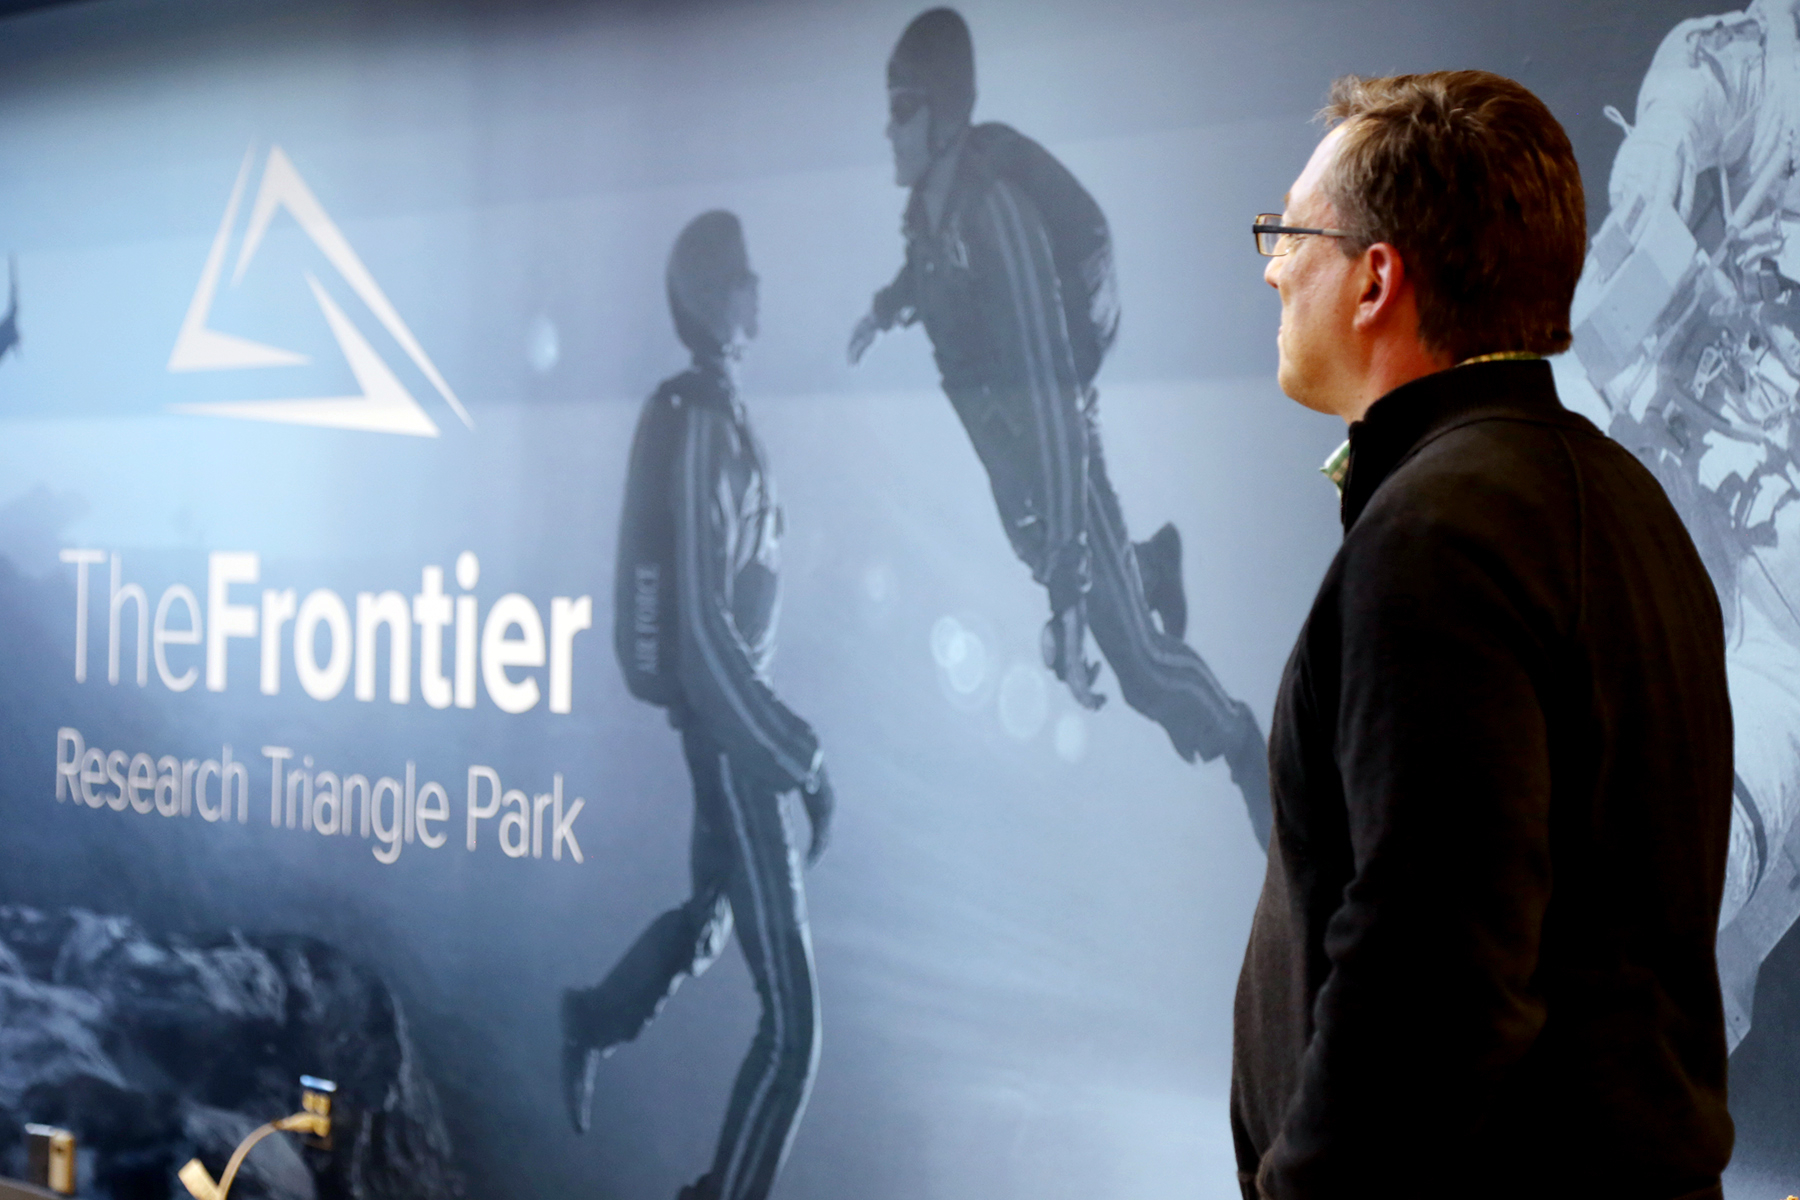 THE FRONTIER - COLLABORATIVE WORKPLACE